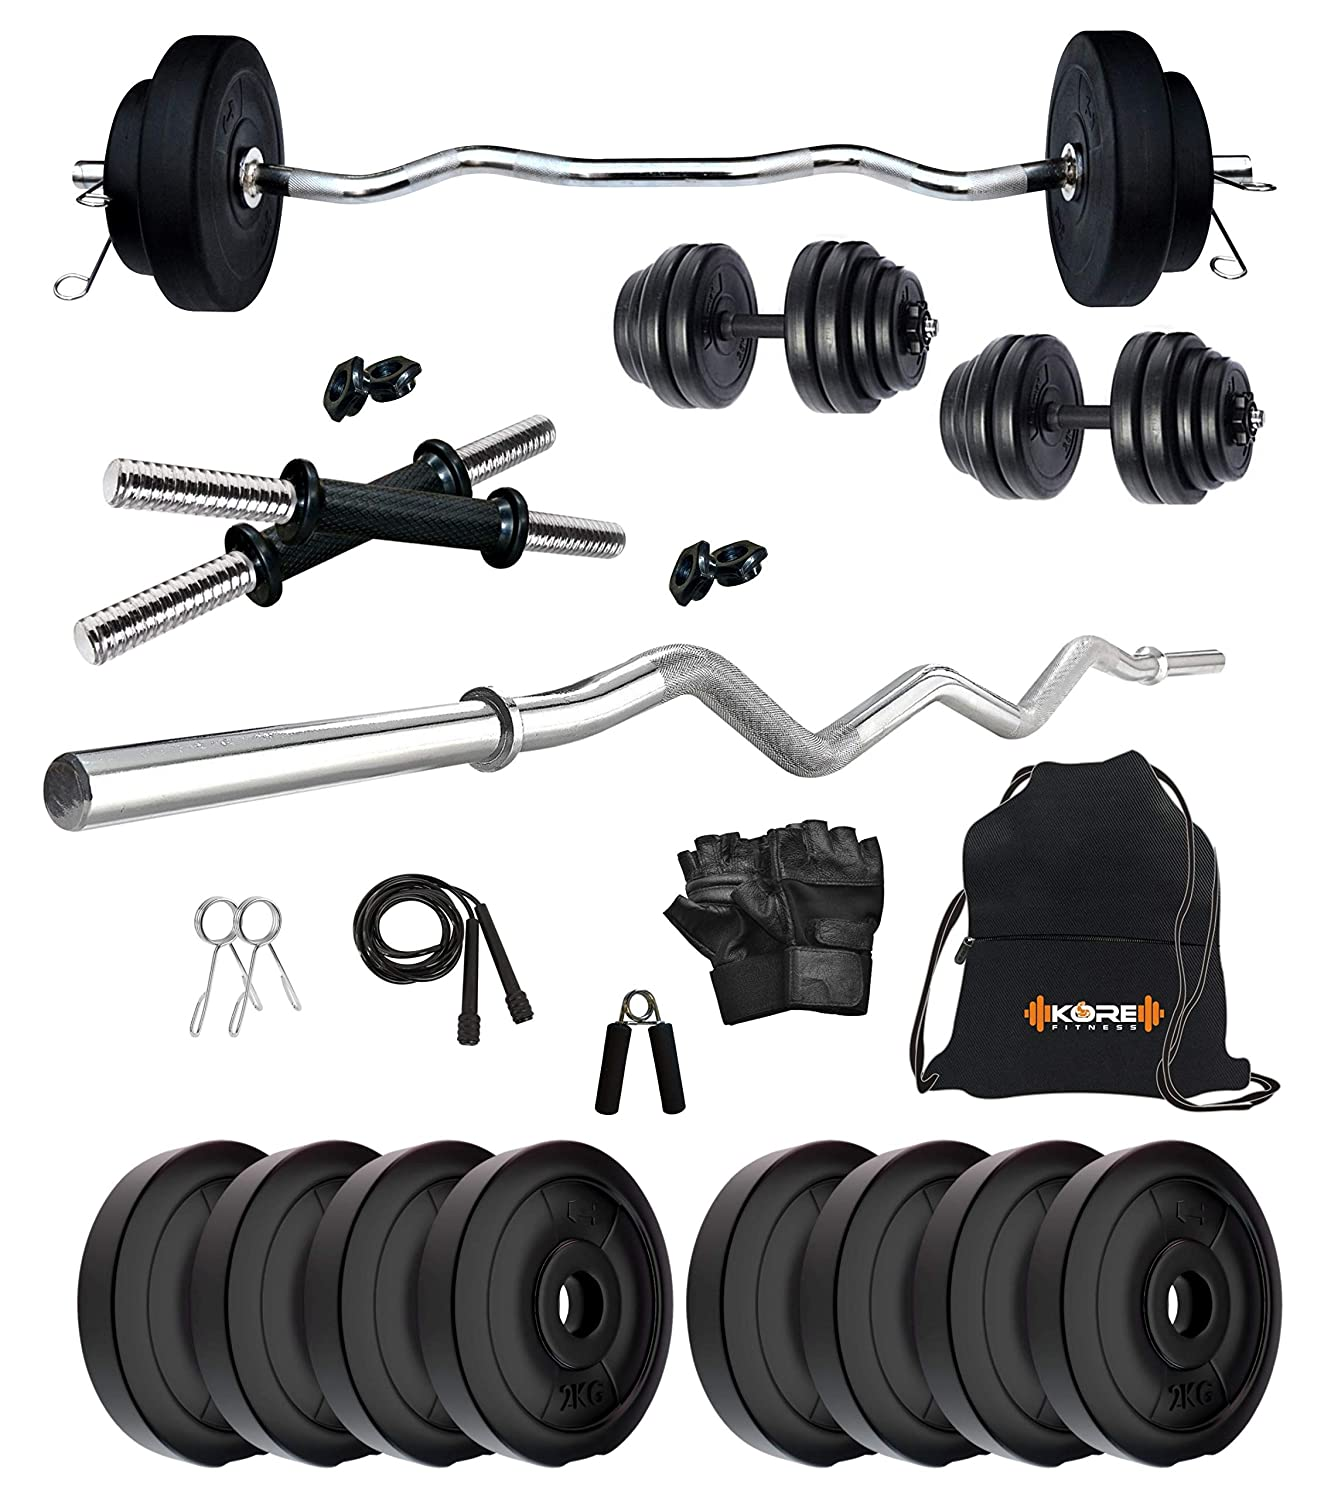 Combo Star X 12 Kg Home Gym with 3 Feet Rod